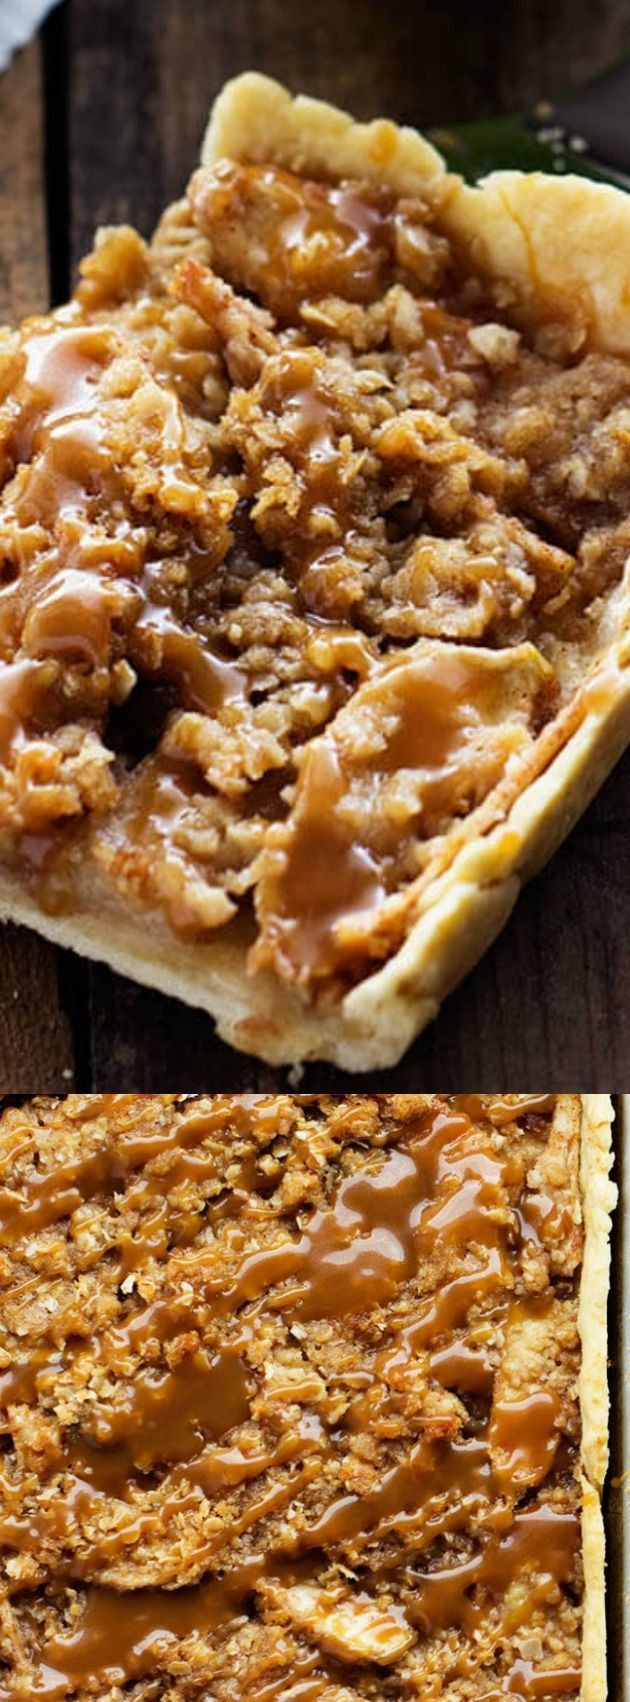 Apple Recipes For Fall  Best 25 Fall desserts ideas on Pinterest